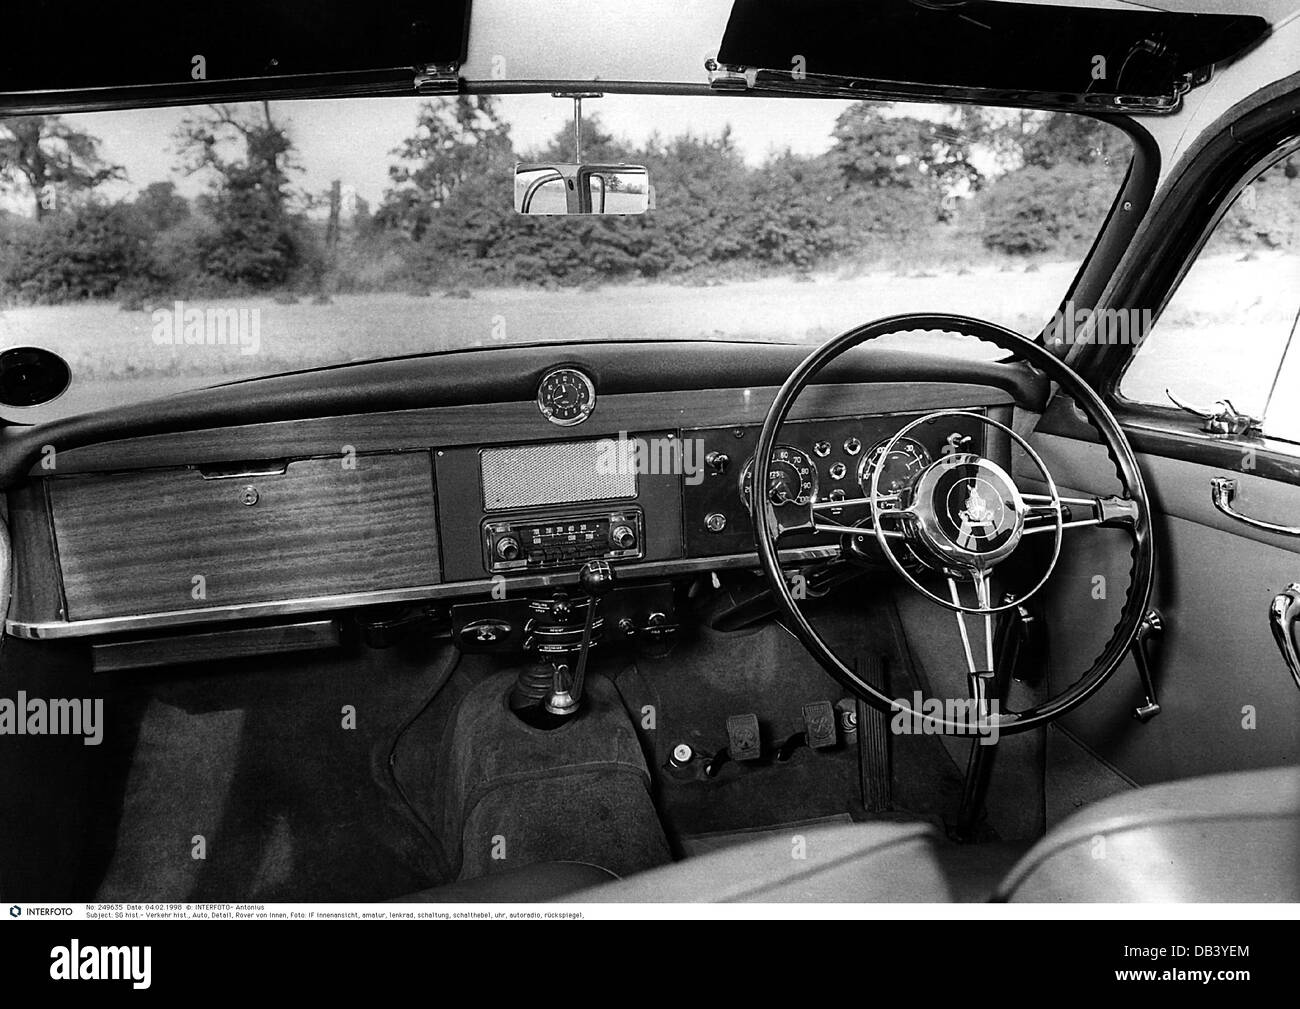 transport transportation car detail rover inside 1960s 60s 20th stock photo 58479756 alamy. Black Bedroom Furniture Sets. Home Design Ideas